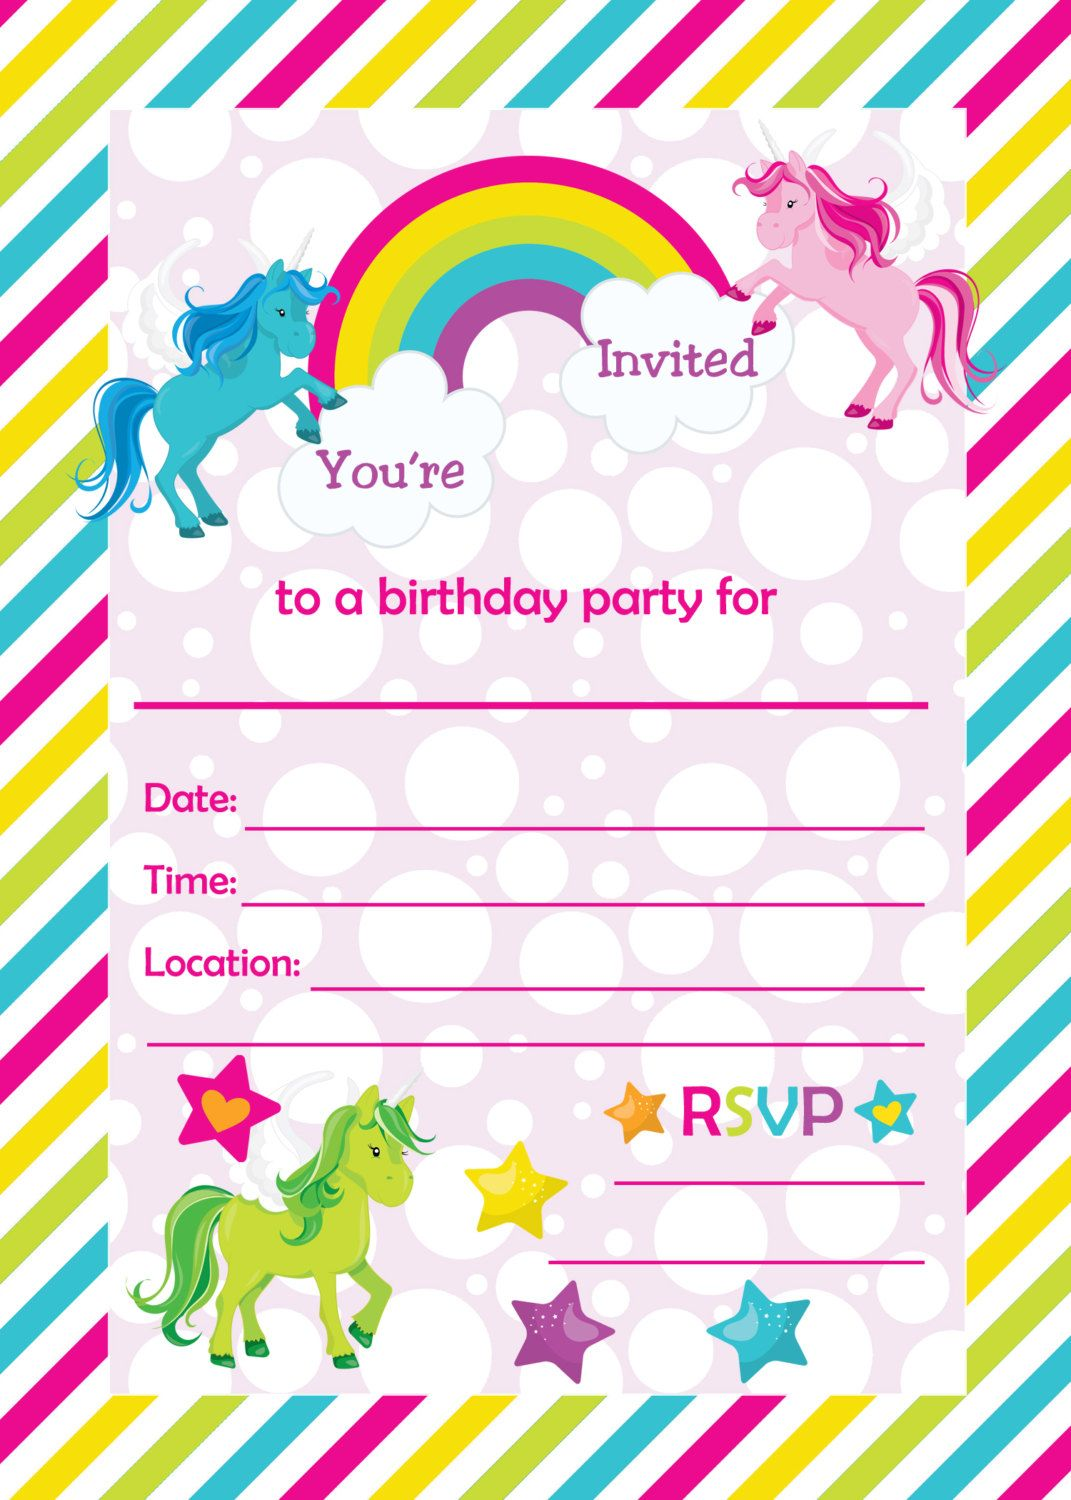 Fill in birthday party invitations printable rainbows and unicorns fill in birthday party invitations printable rainbows and unicorns invitations blank party invitation download 650 handmade holidays stopboris Image collections